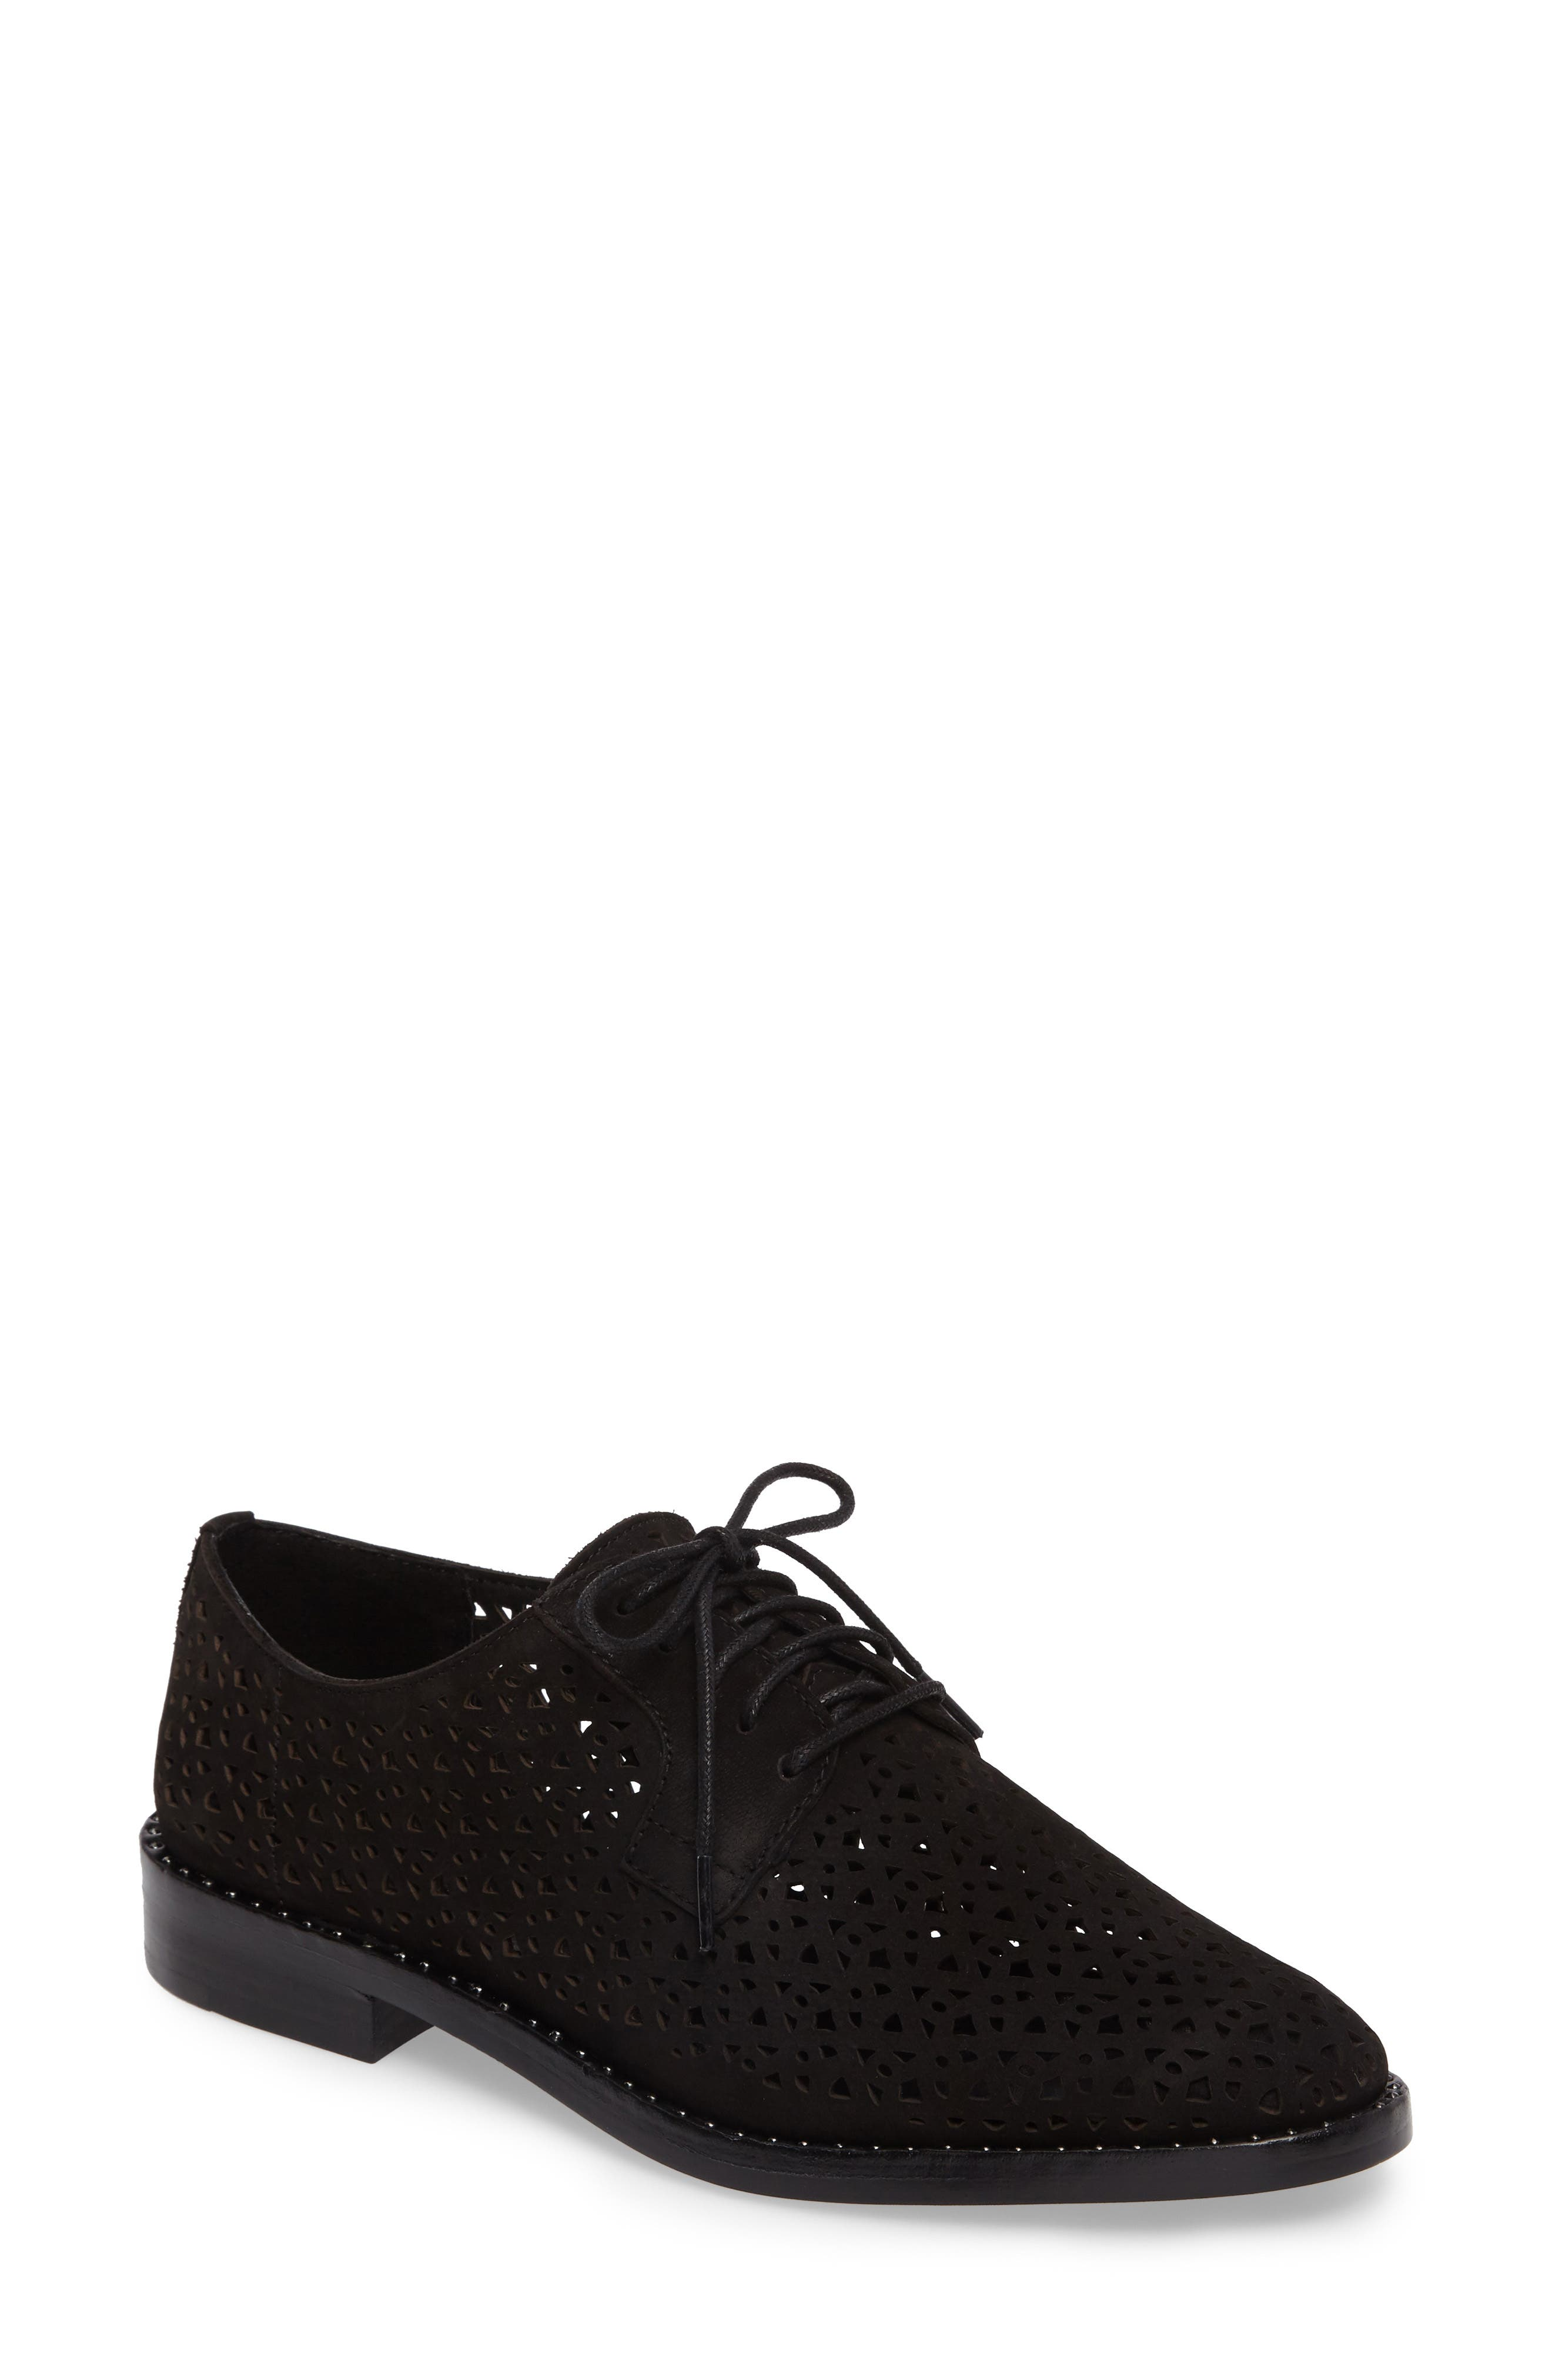 Lesta Geo Perforated Oxford,                         Main,                         color, 001